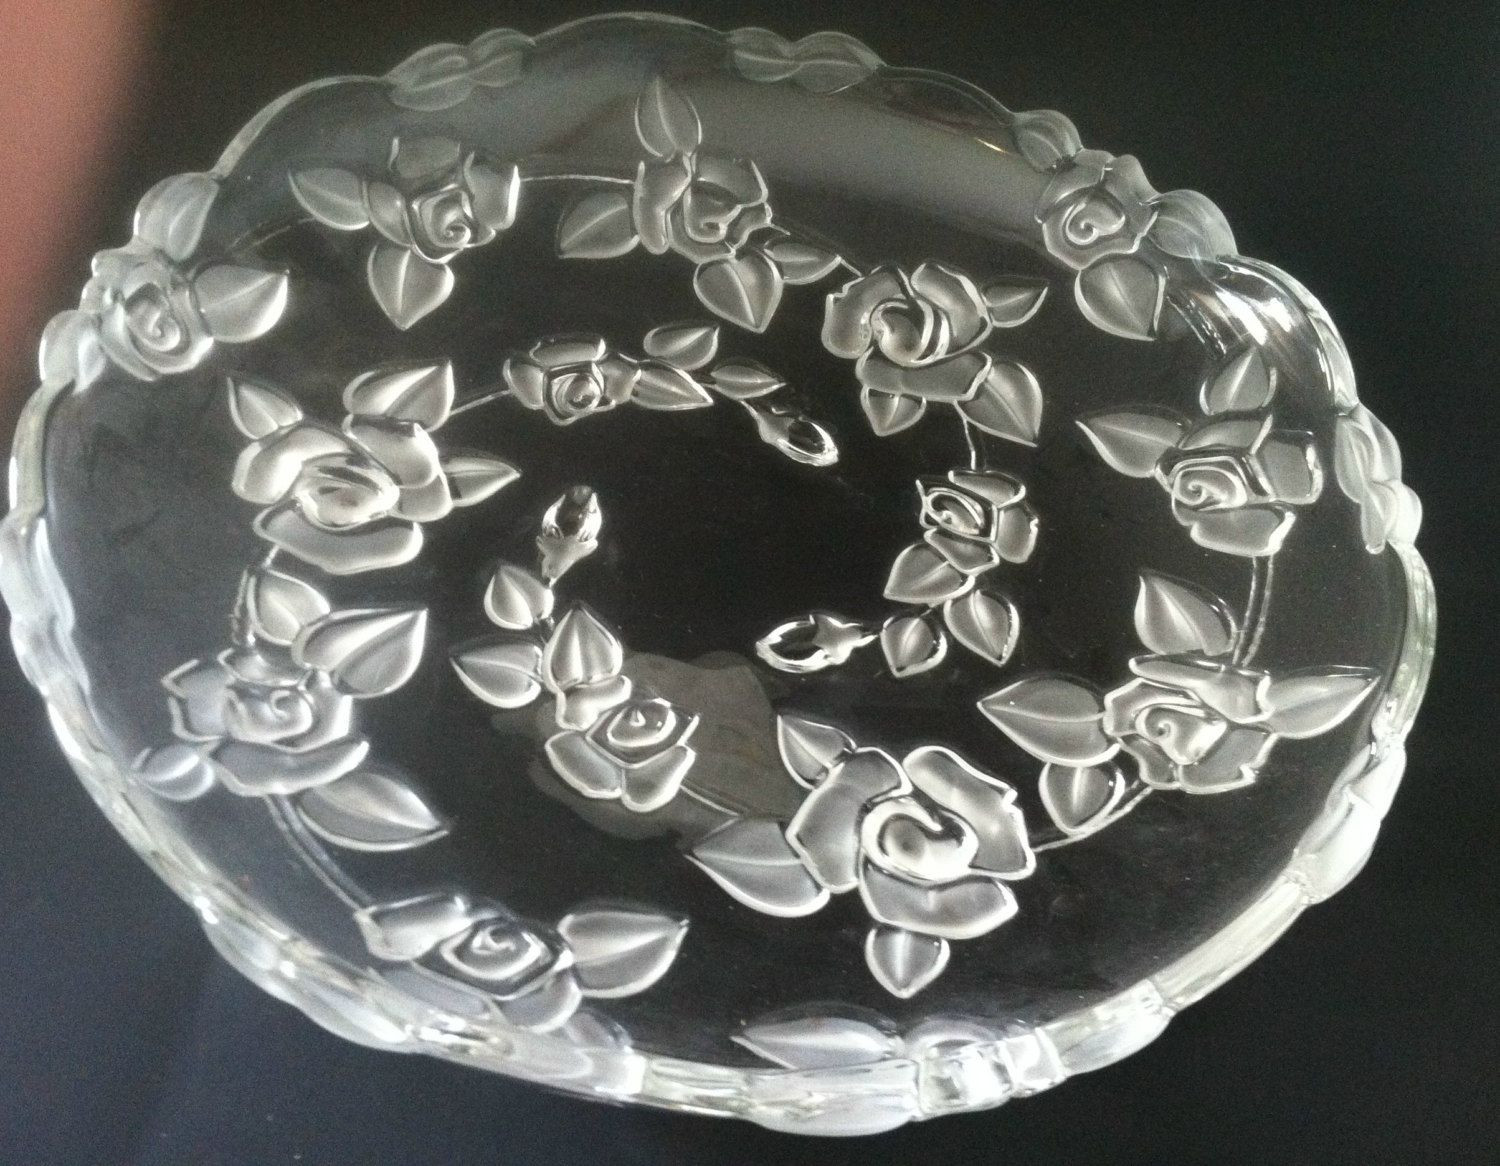 mikasa florale vase of mikasa embossed frosted rose footed serving dish plate bowl in mikasa embossed frosted rose footed serving dish plate bowl scalloped edge by michellesvarietyshop on etsy